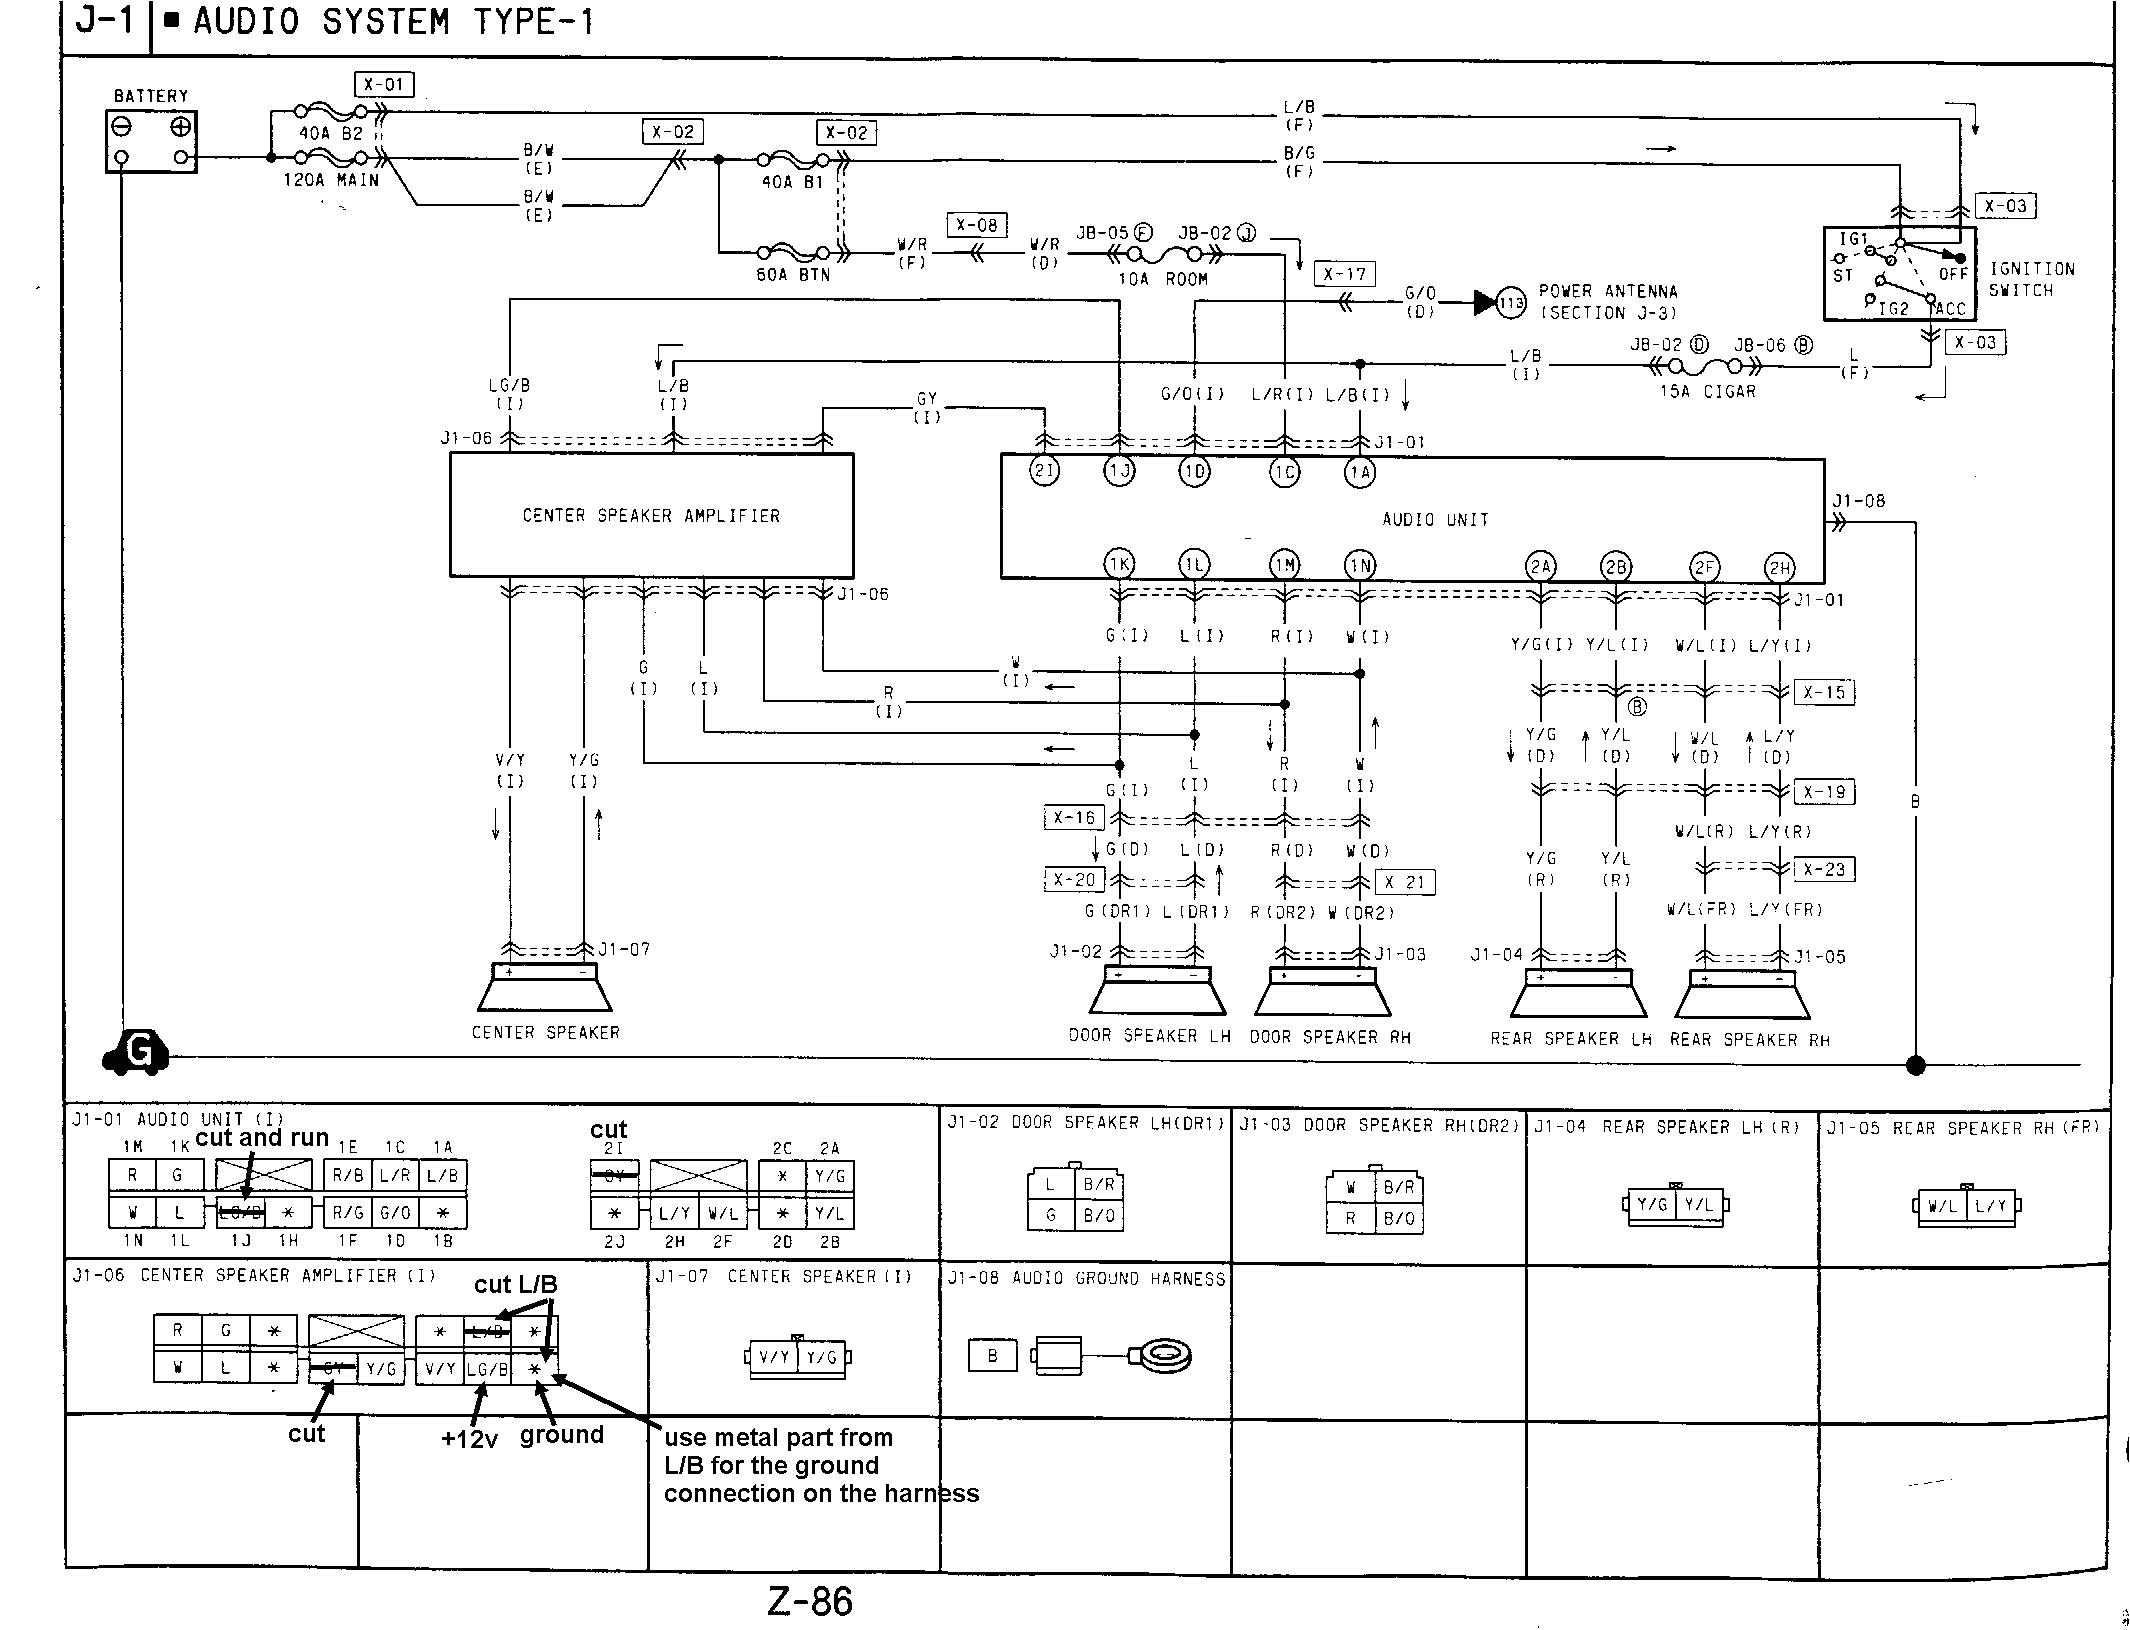 stereo base schematic gif